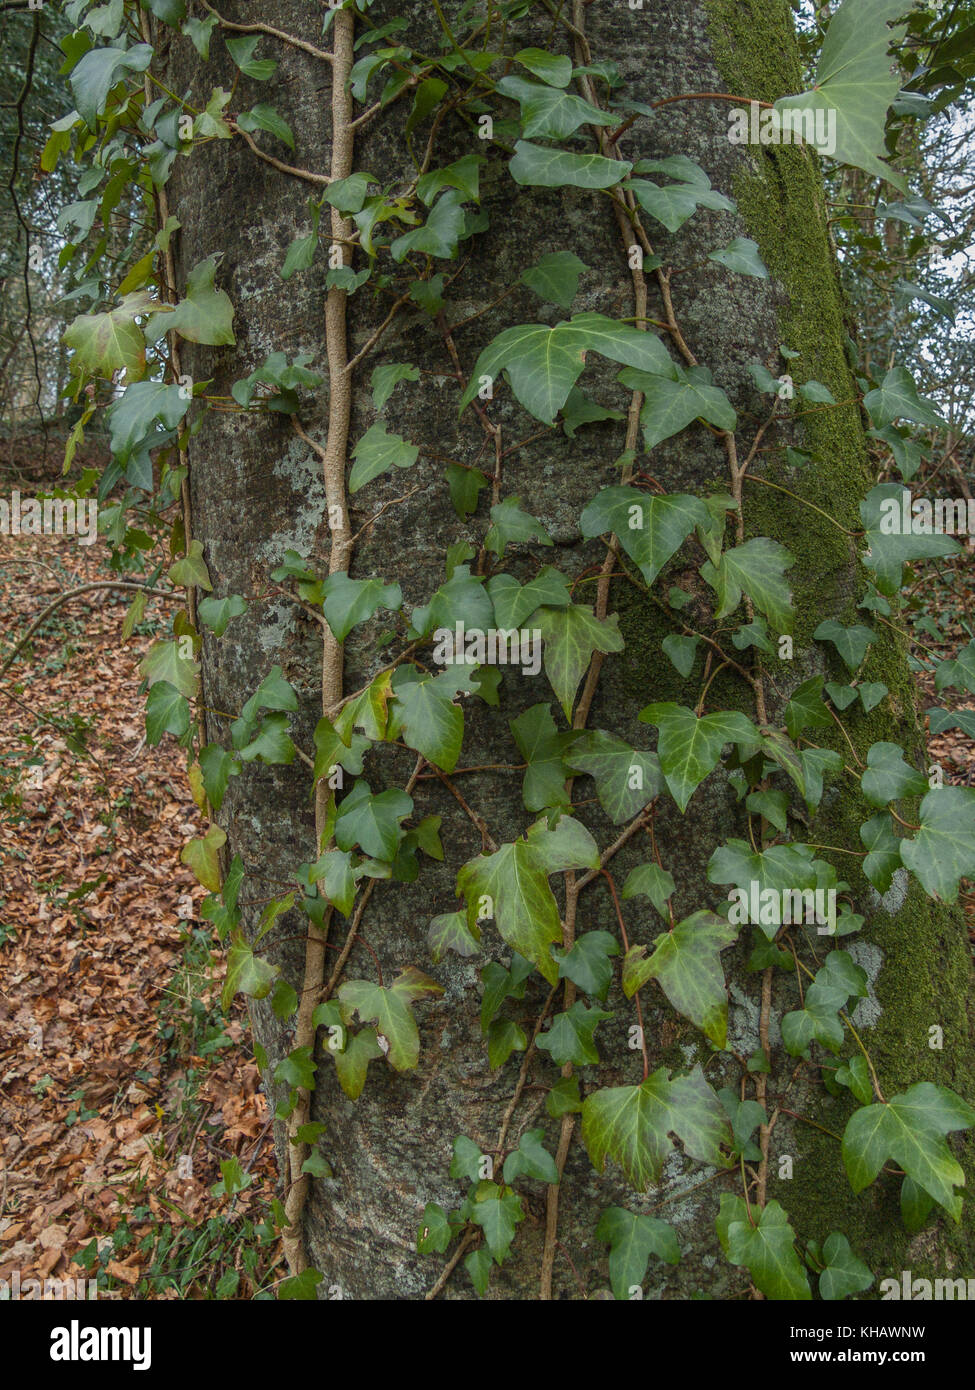 Vines of Ivy (Hedera helix) smothering the trunk of a host tree. - Stock Image